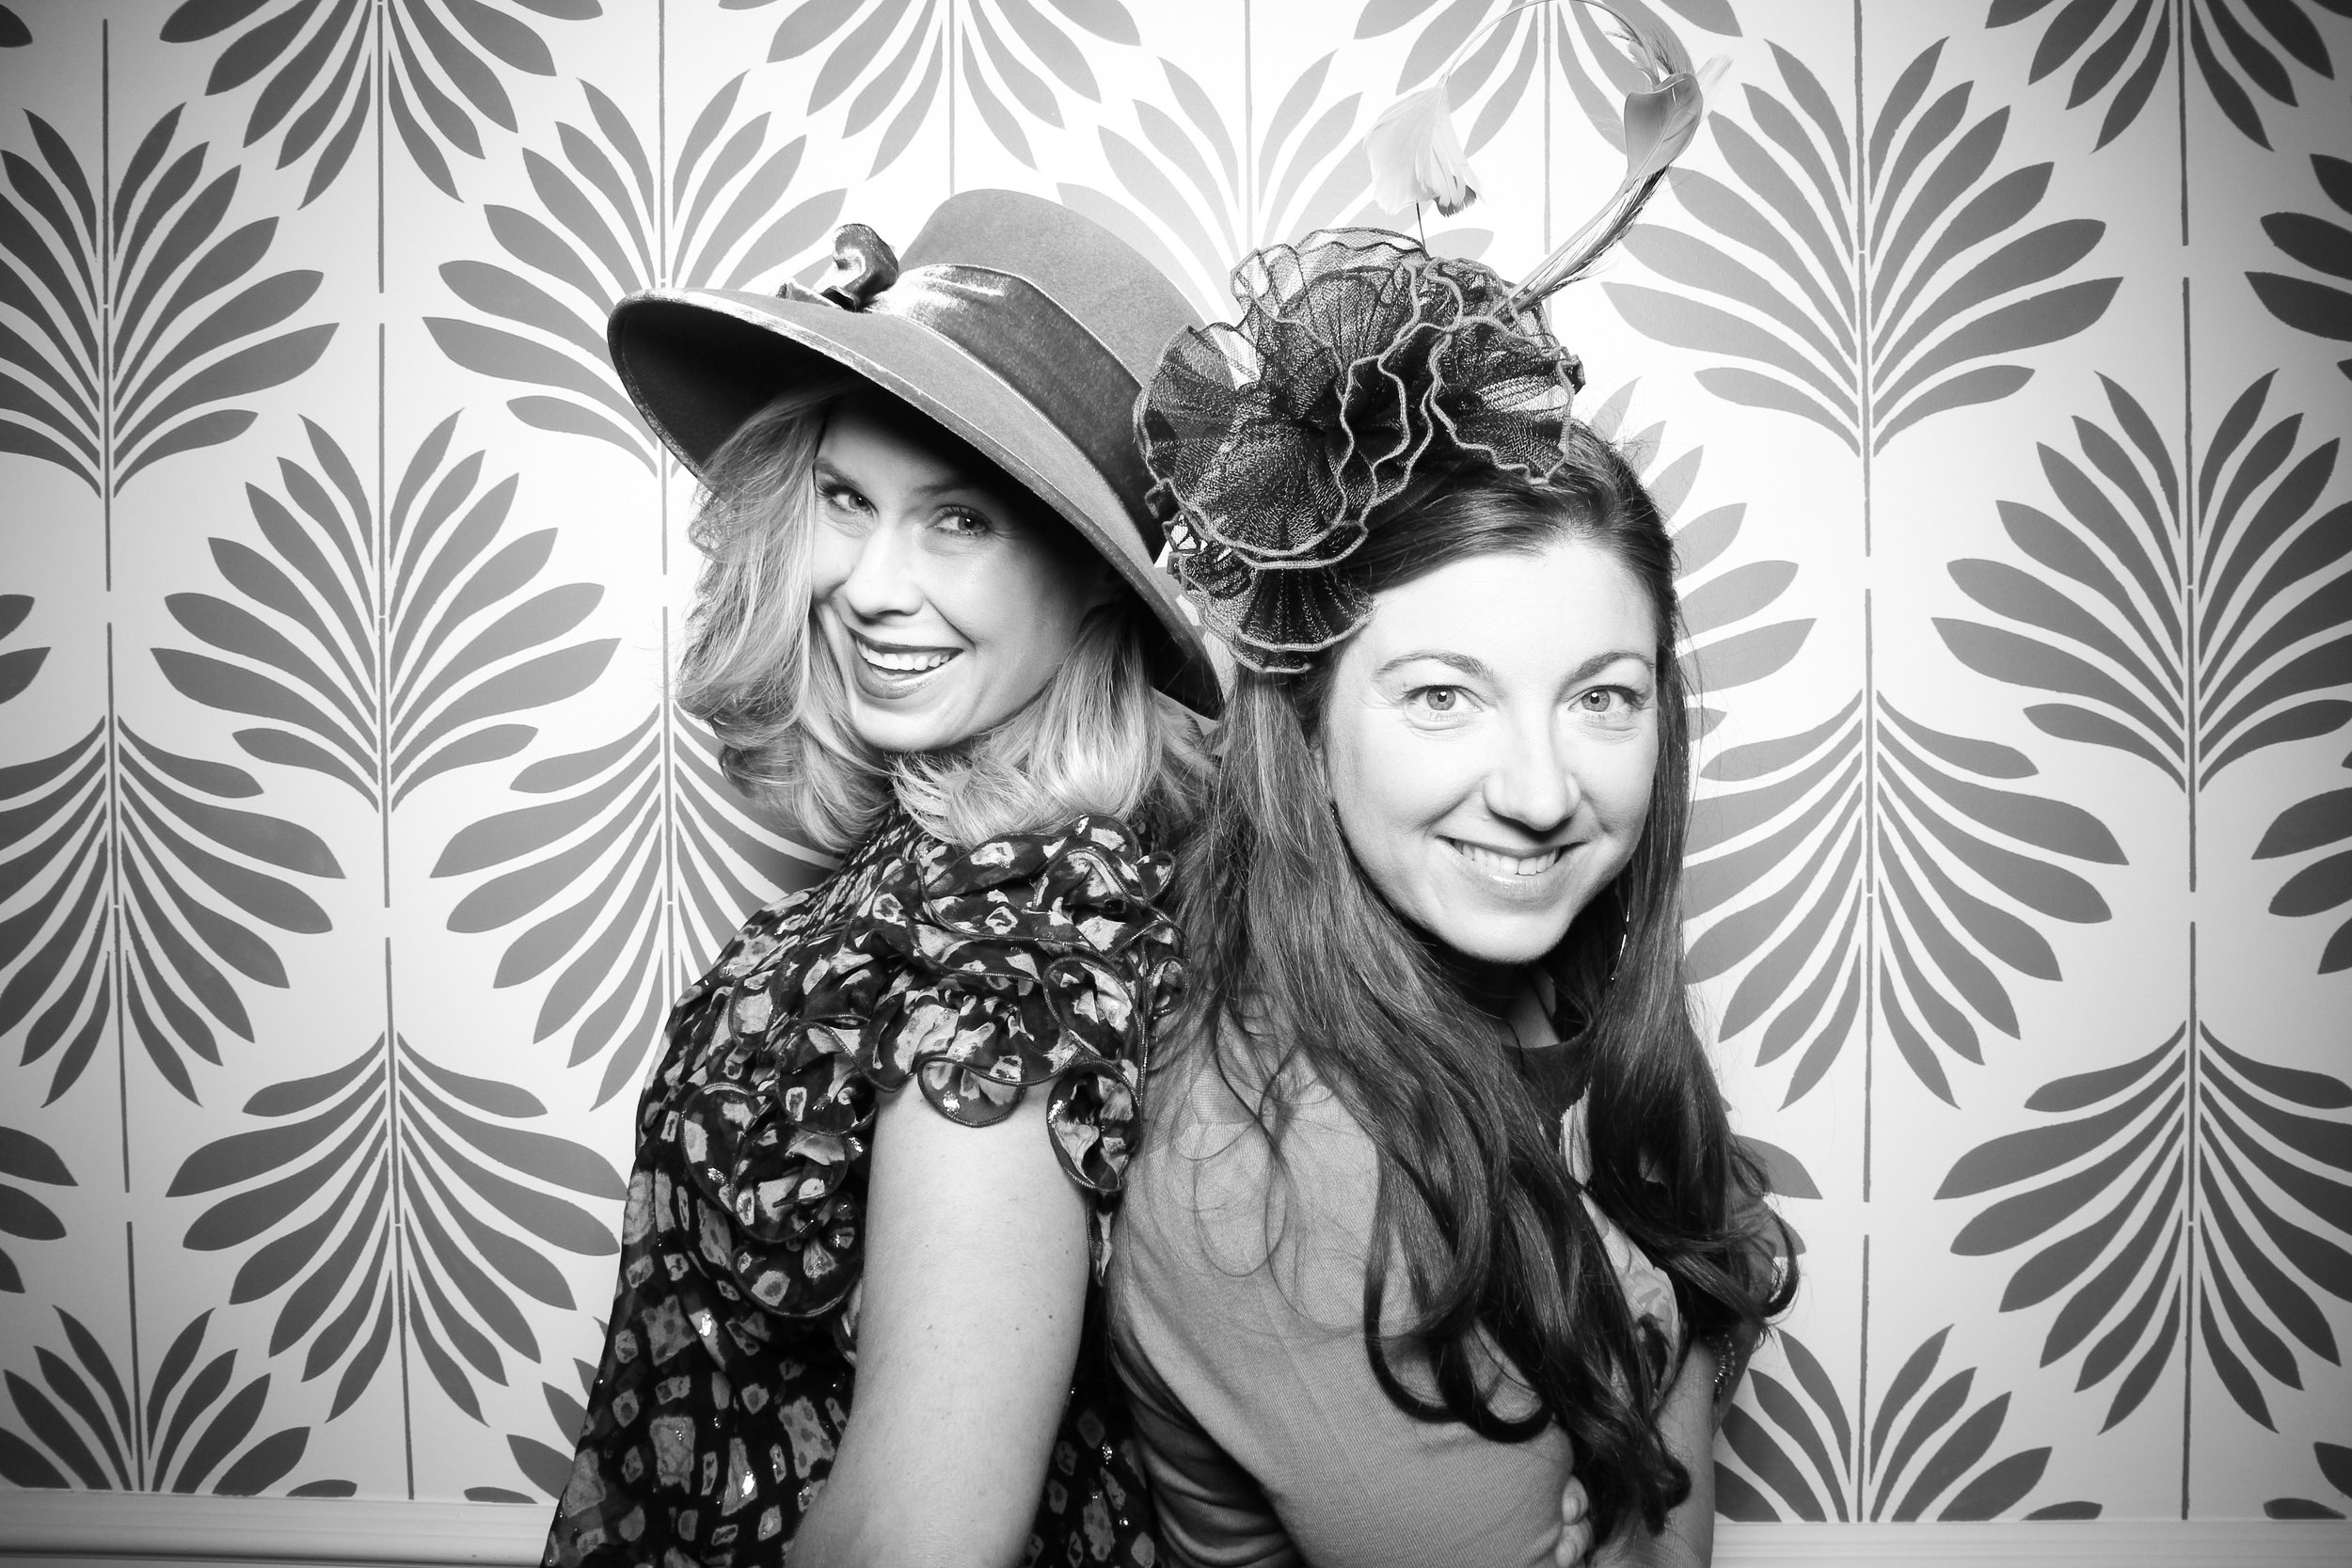 LaGrange_Country_Club_Photo_Booth_Wedding_Reception__24.jpg